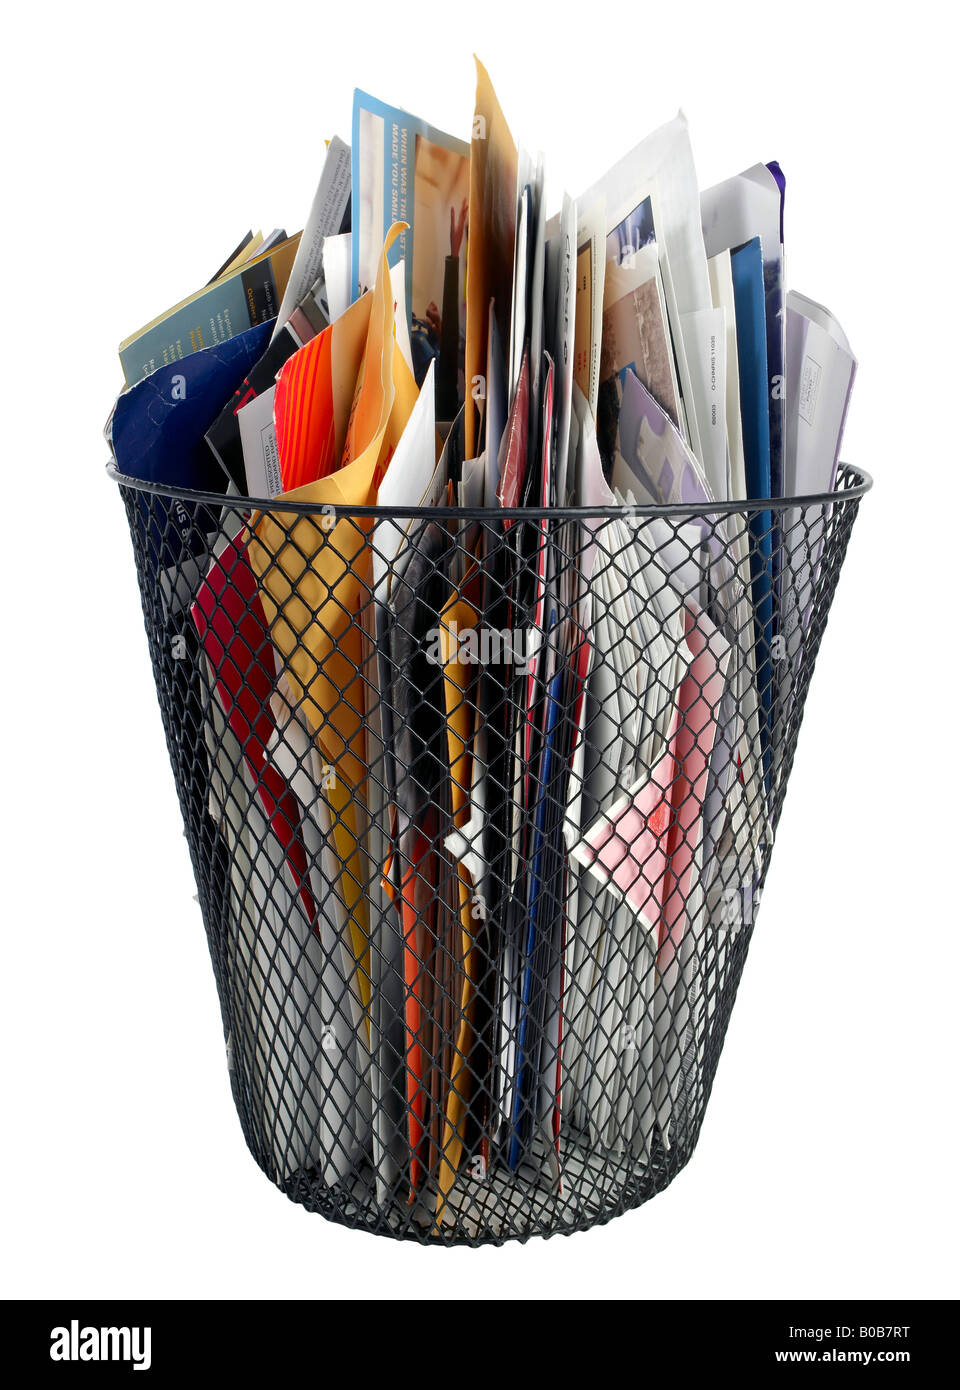 junk mail - Stock Image